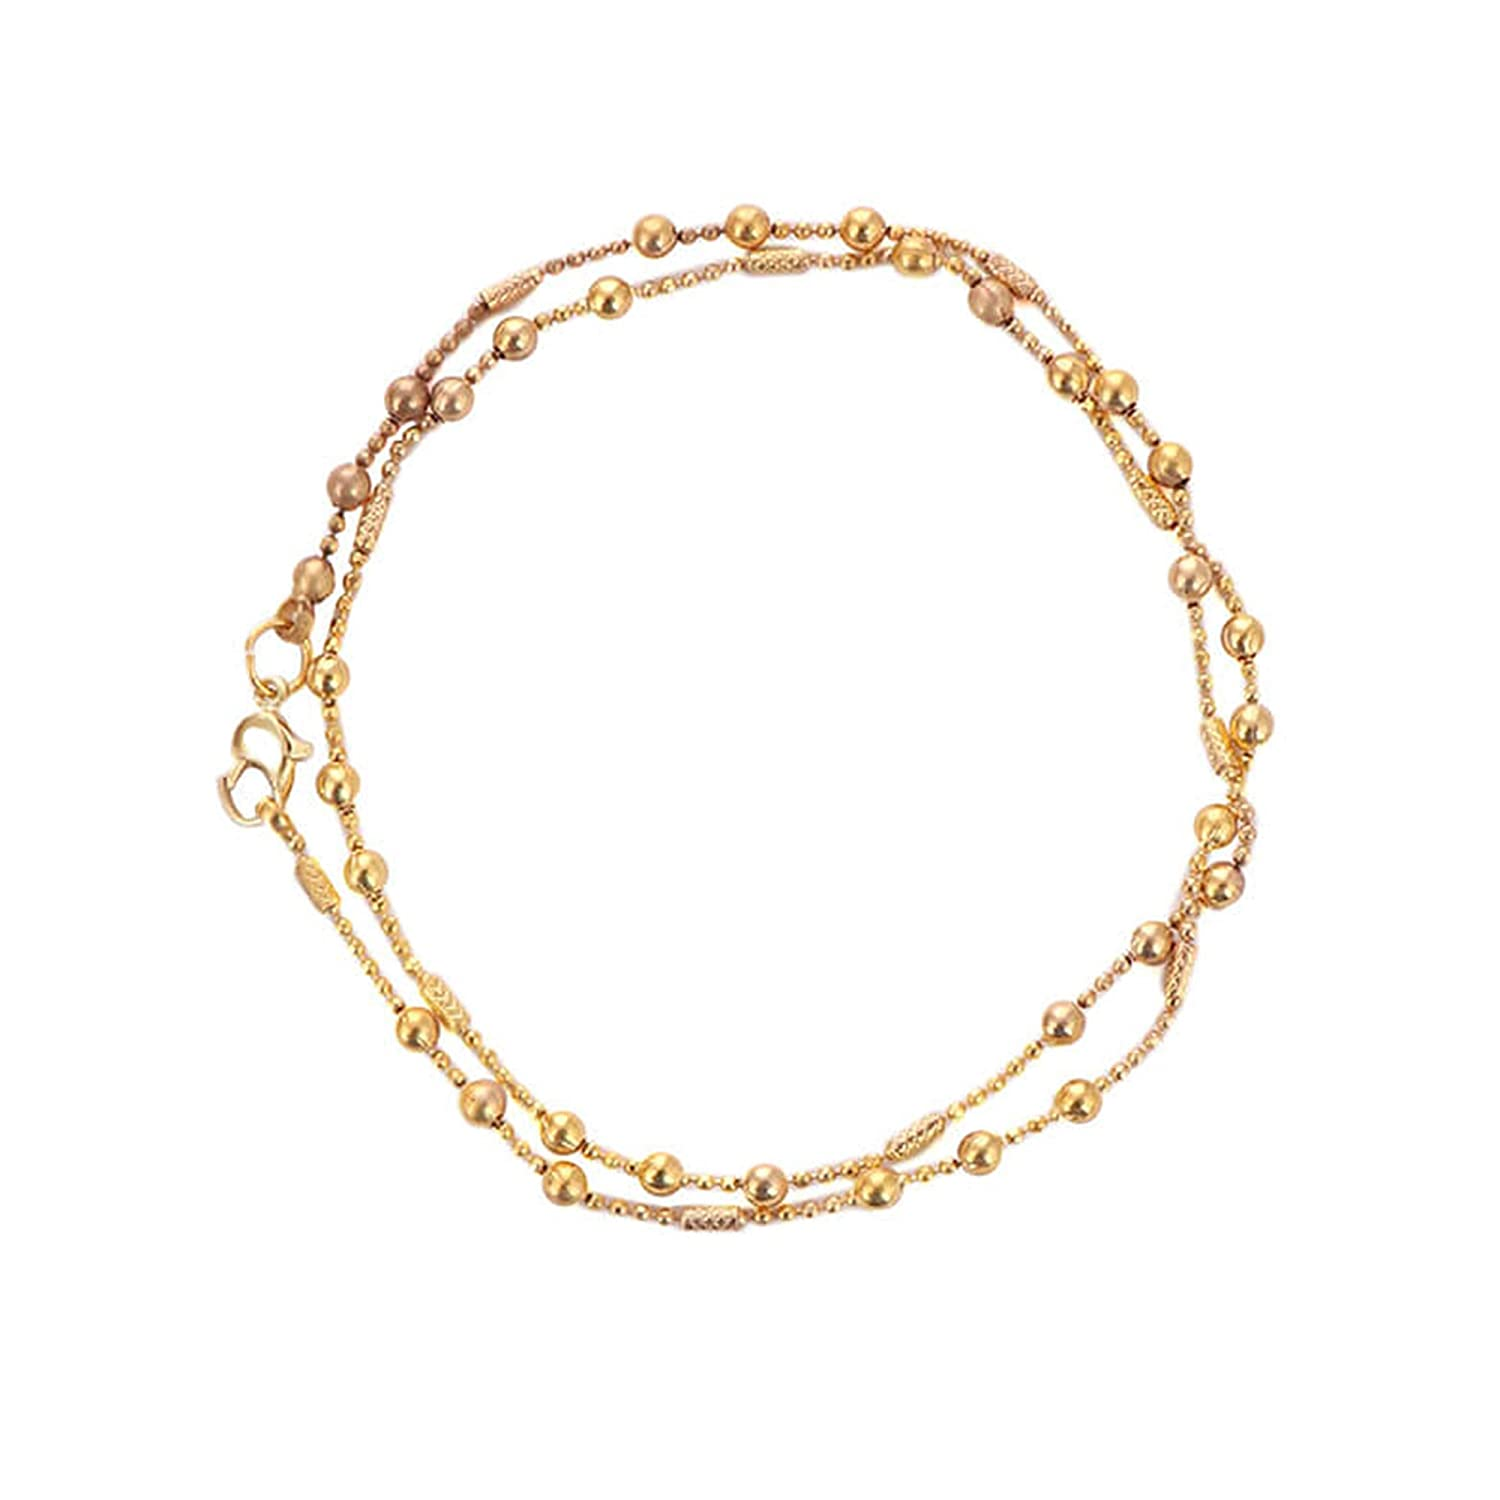 3c288af369216 Buy Tjori Contemporary Gold Plated Brass Anklet Layered Matar Mala ...